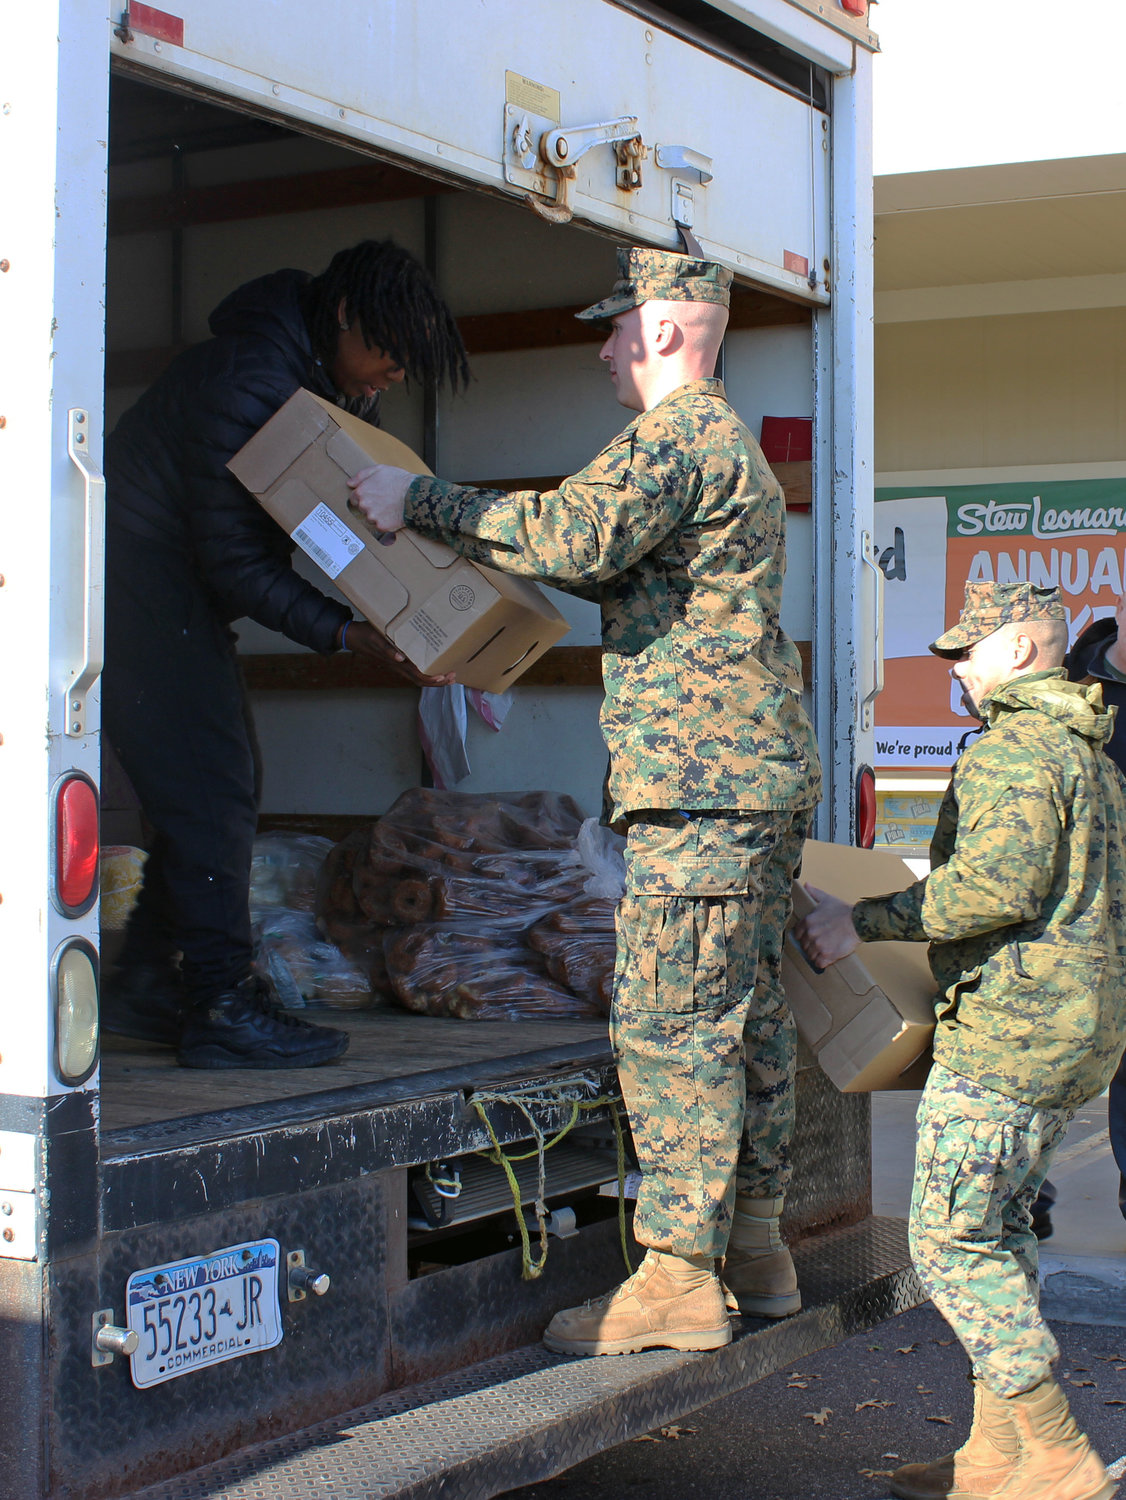 Gunnery Sgt. John Sardine, above center, and Sgt. Jake Stanuch, both of the Marine Corps' 2nd Battalion, 25th Marines unit in Garden City, loaded turkeys for delivery to the Mary Brennan Interfaith Nutrition Network in Hempstead.